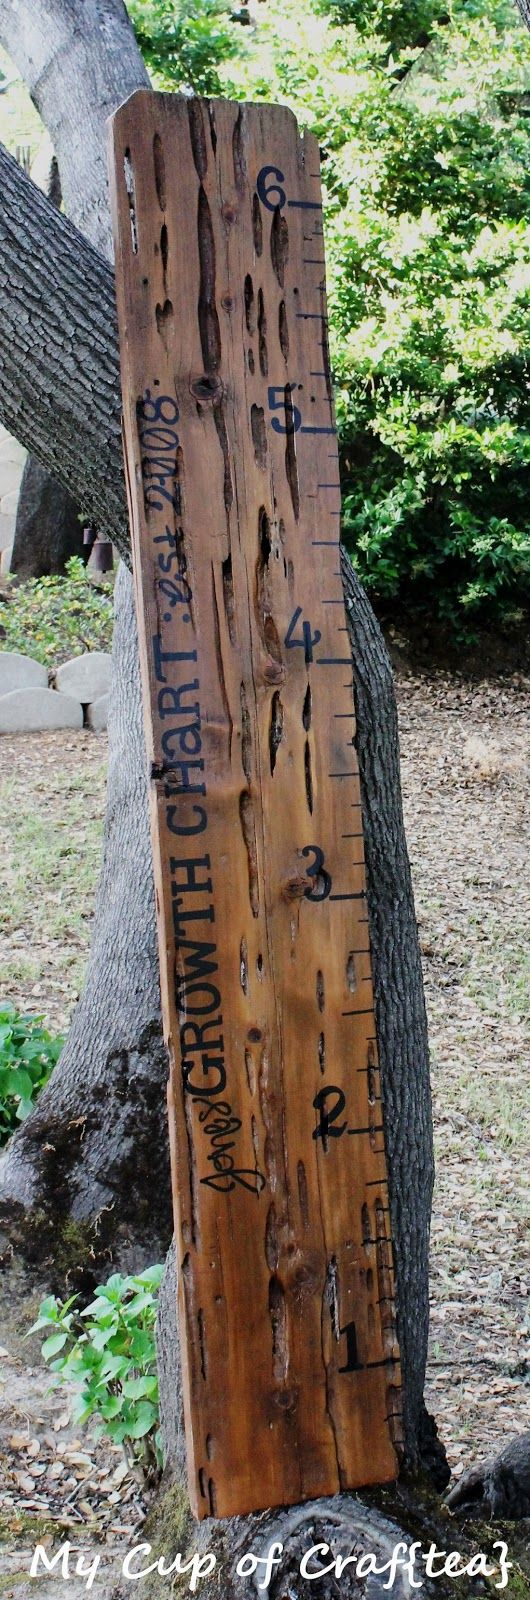 Best 10 old fence boards ideas on pinterest pallet boards hand painted ruler growth chart from an old fence board 3 baanklon Image collections